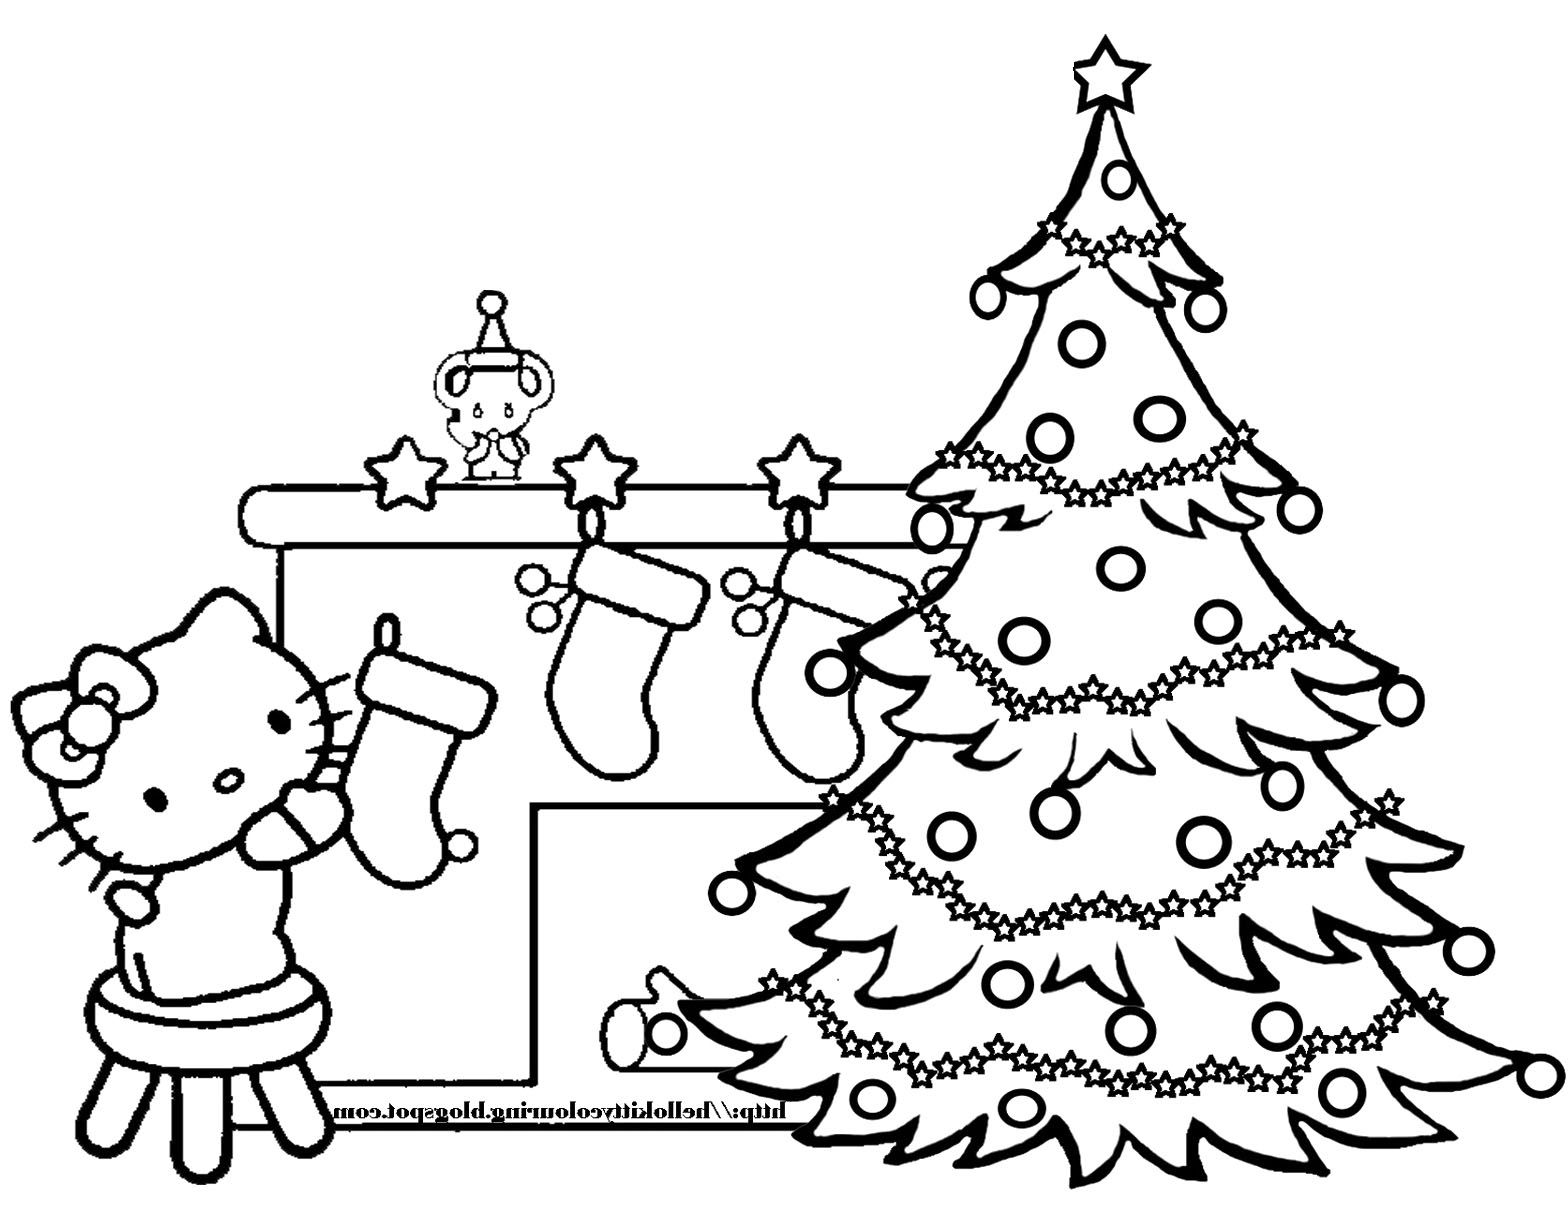 Christmas tree with presents coloring pages | art party | Pinterest ...